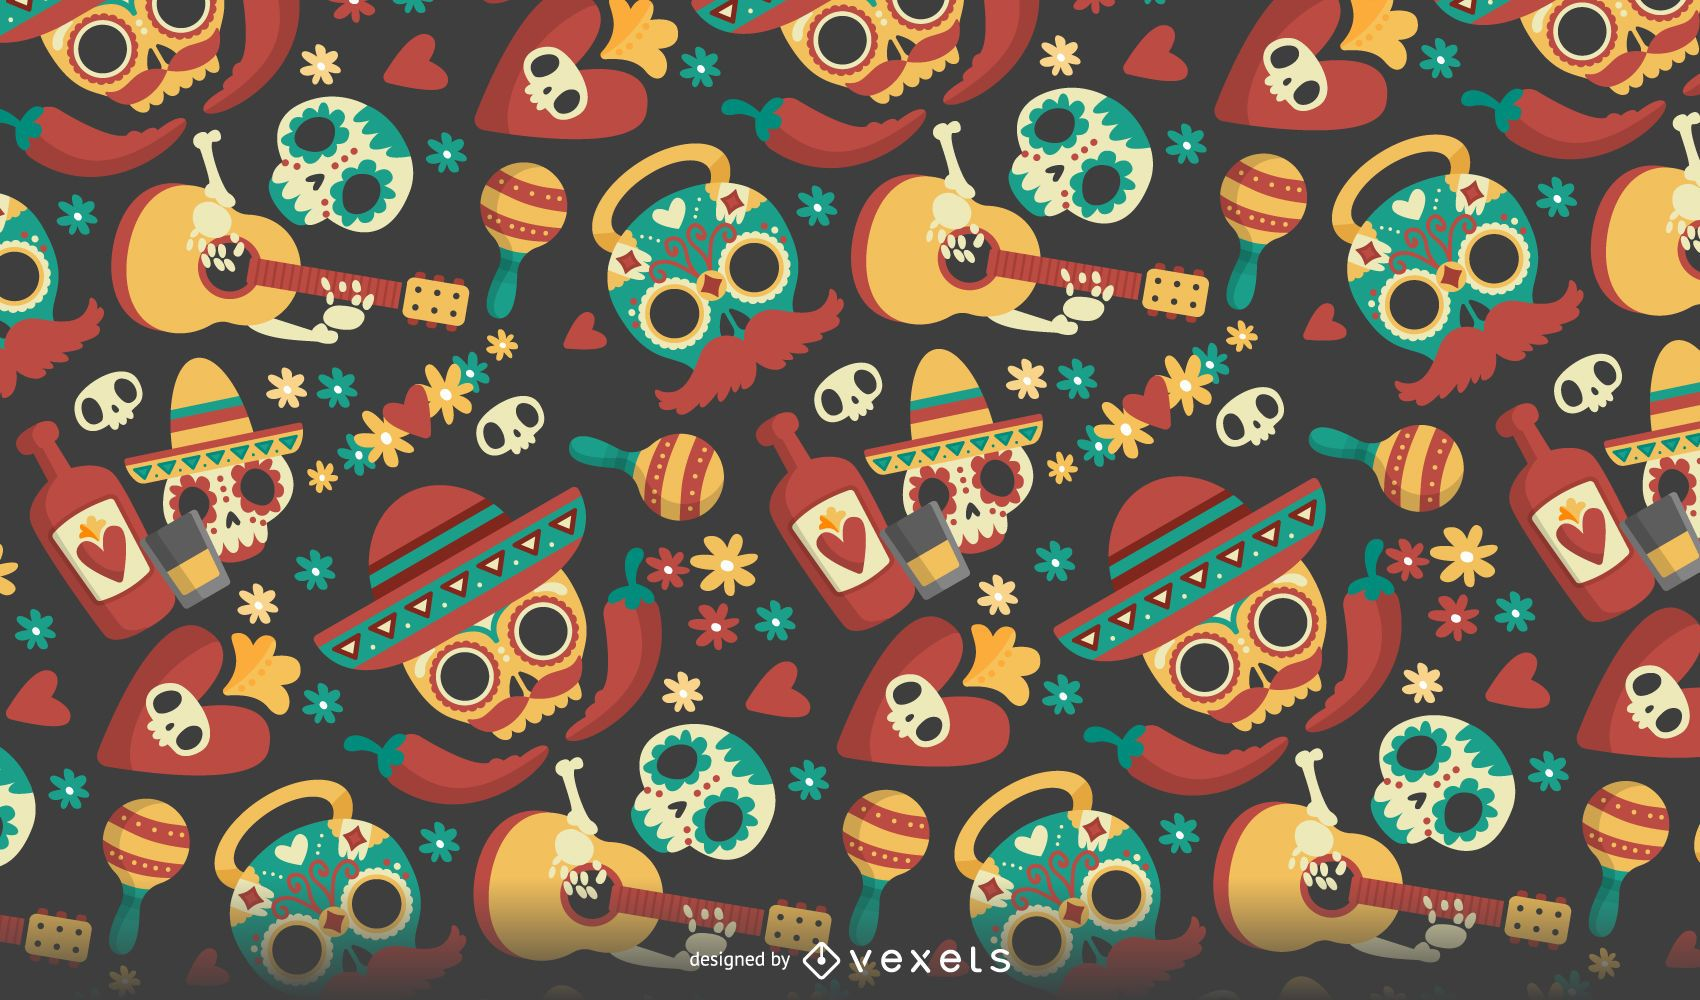 Seasonal Wallpaper For Iphone Dia De Los Muertos Seamless Pattern Vector Download